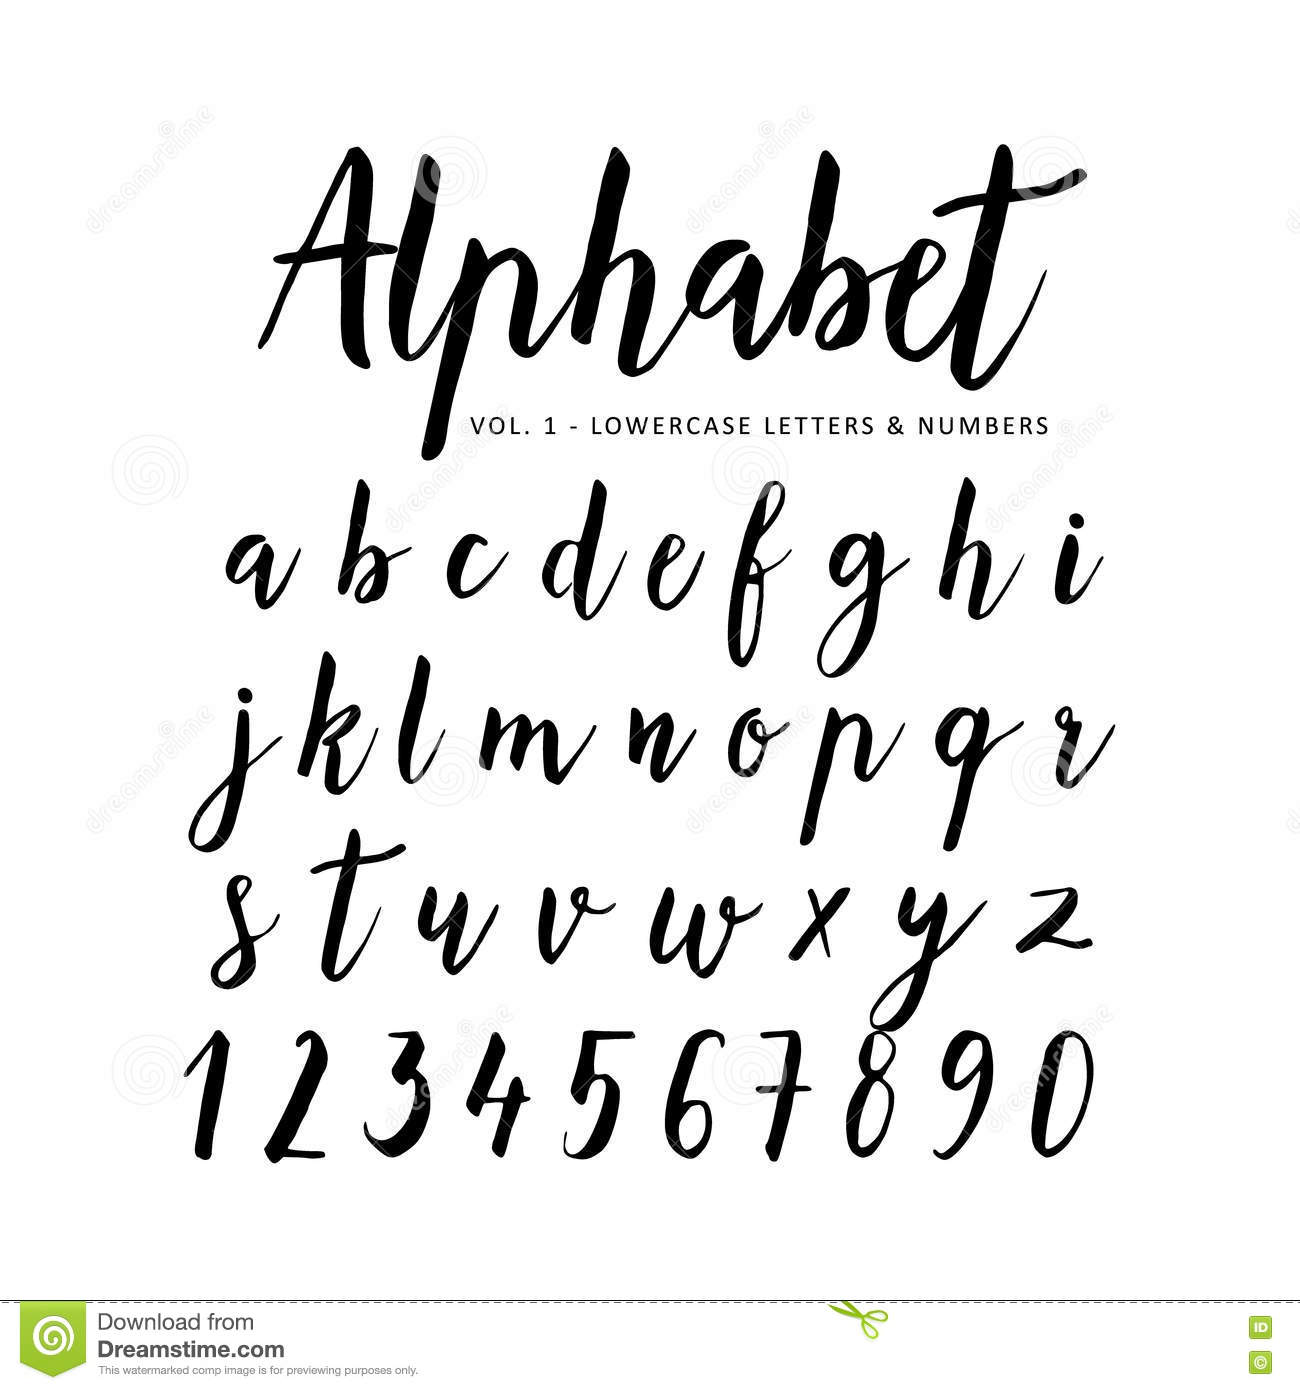 Hand drawn lettering fonts pixshark images